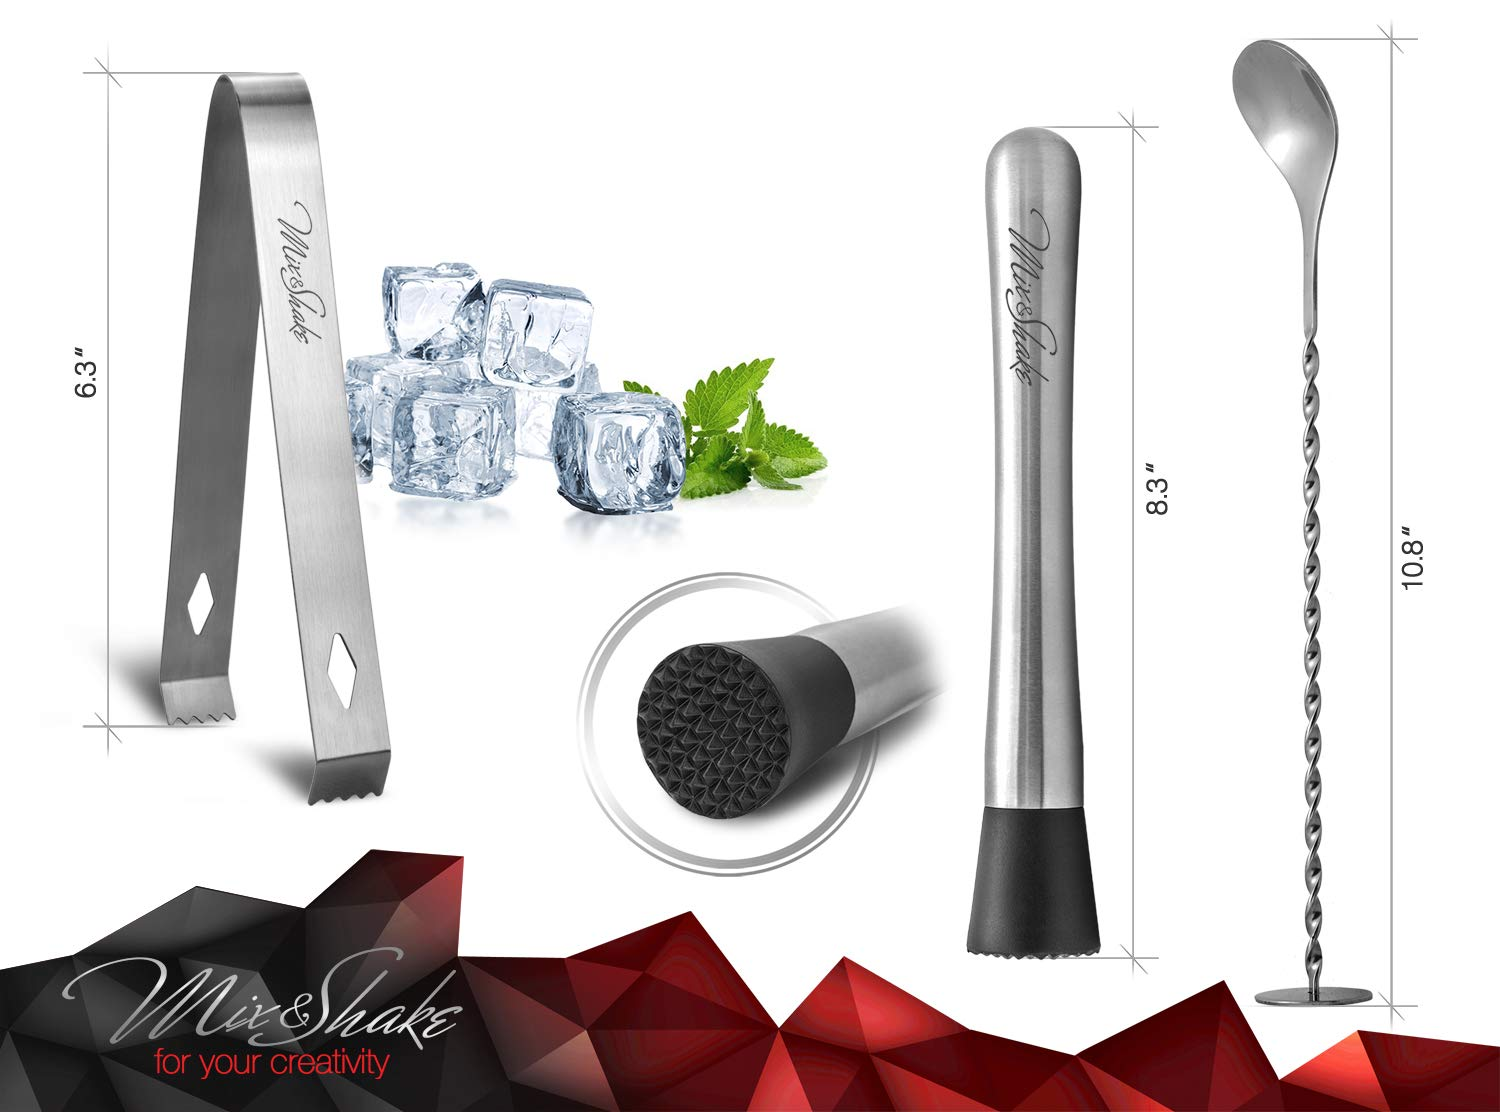 Cocktail Shaker - Cobbler Shaker - Bartender Kit - Bar Supplies - Drink Mixer - Martini Shaker Set-11 Piece Stainless Steel Cocktail Shaker Set With Strainer, Muddler, Two Jiggers, Bar Spoon,Ice Tongs by Mix&Shake (Image #5)